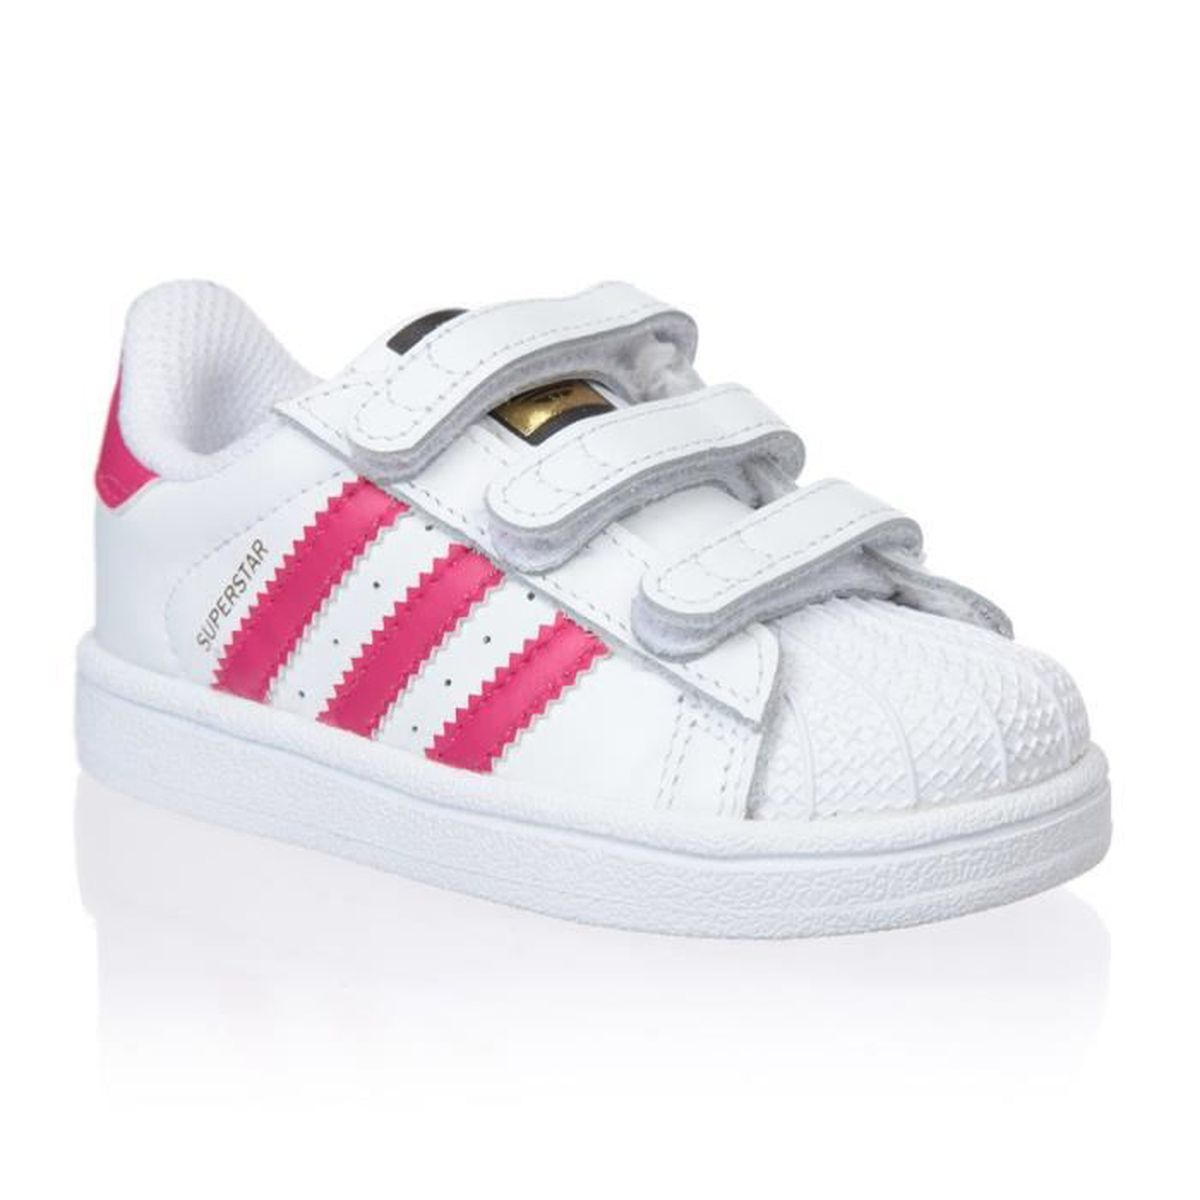 online retailer 67801 8dc7e ADIDAS ORIGINALS Baskets Superstar Chaussures Enfant Fille